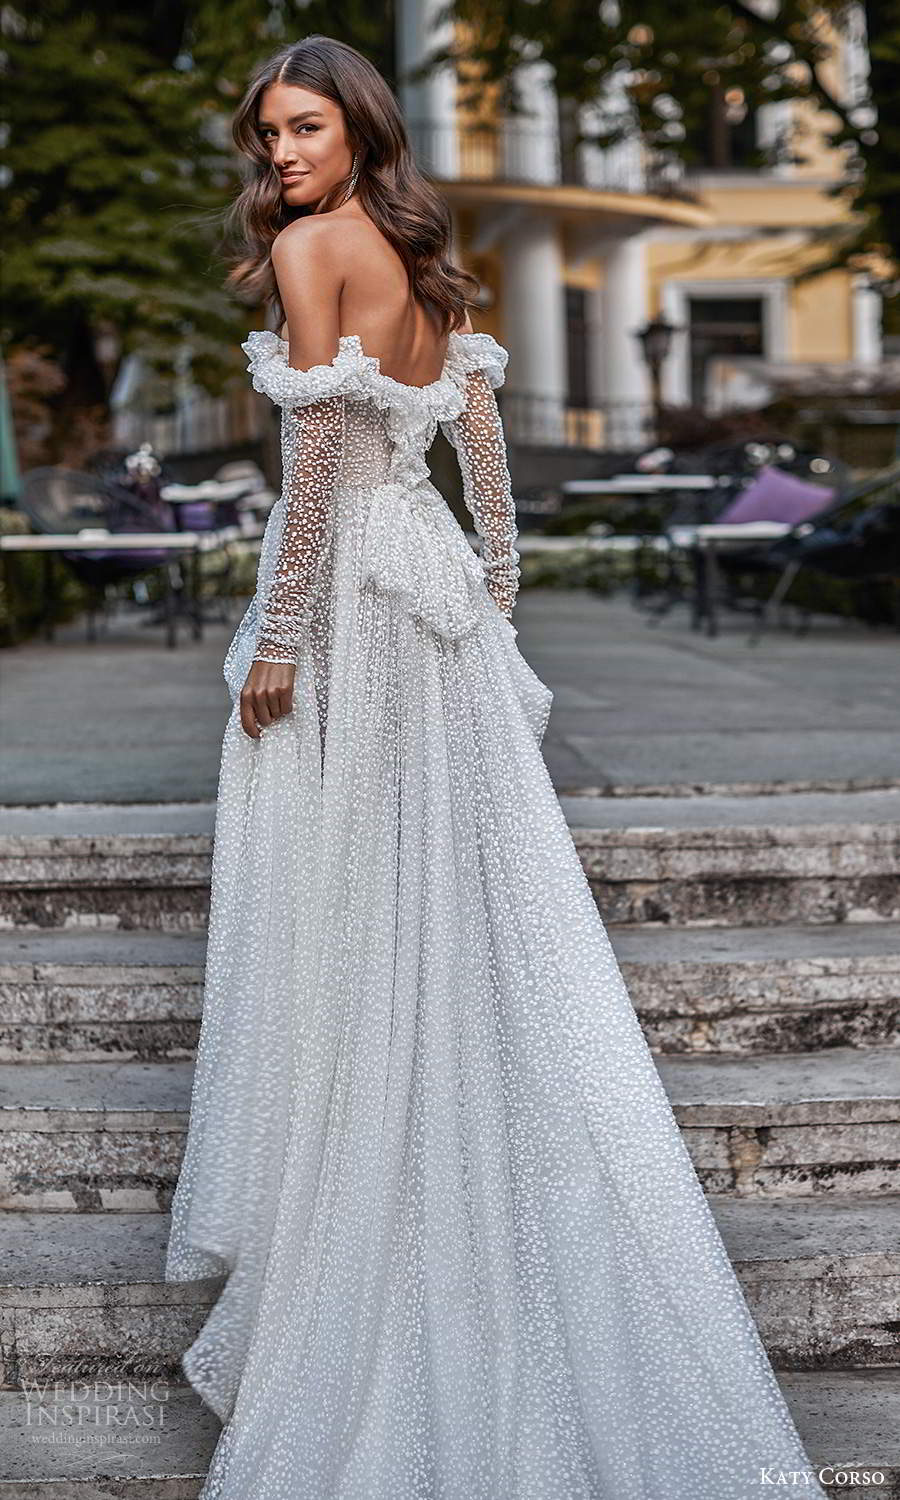 katy corso 2021 bridal off shoulder long sleeves sweetheart neckline fully embellished a line ball gown wedding dress chapel train (13) bv